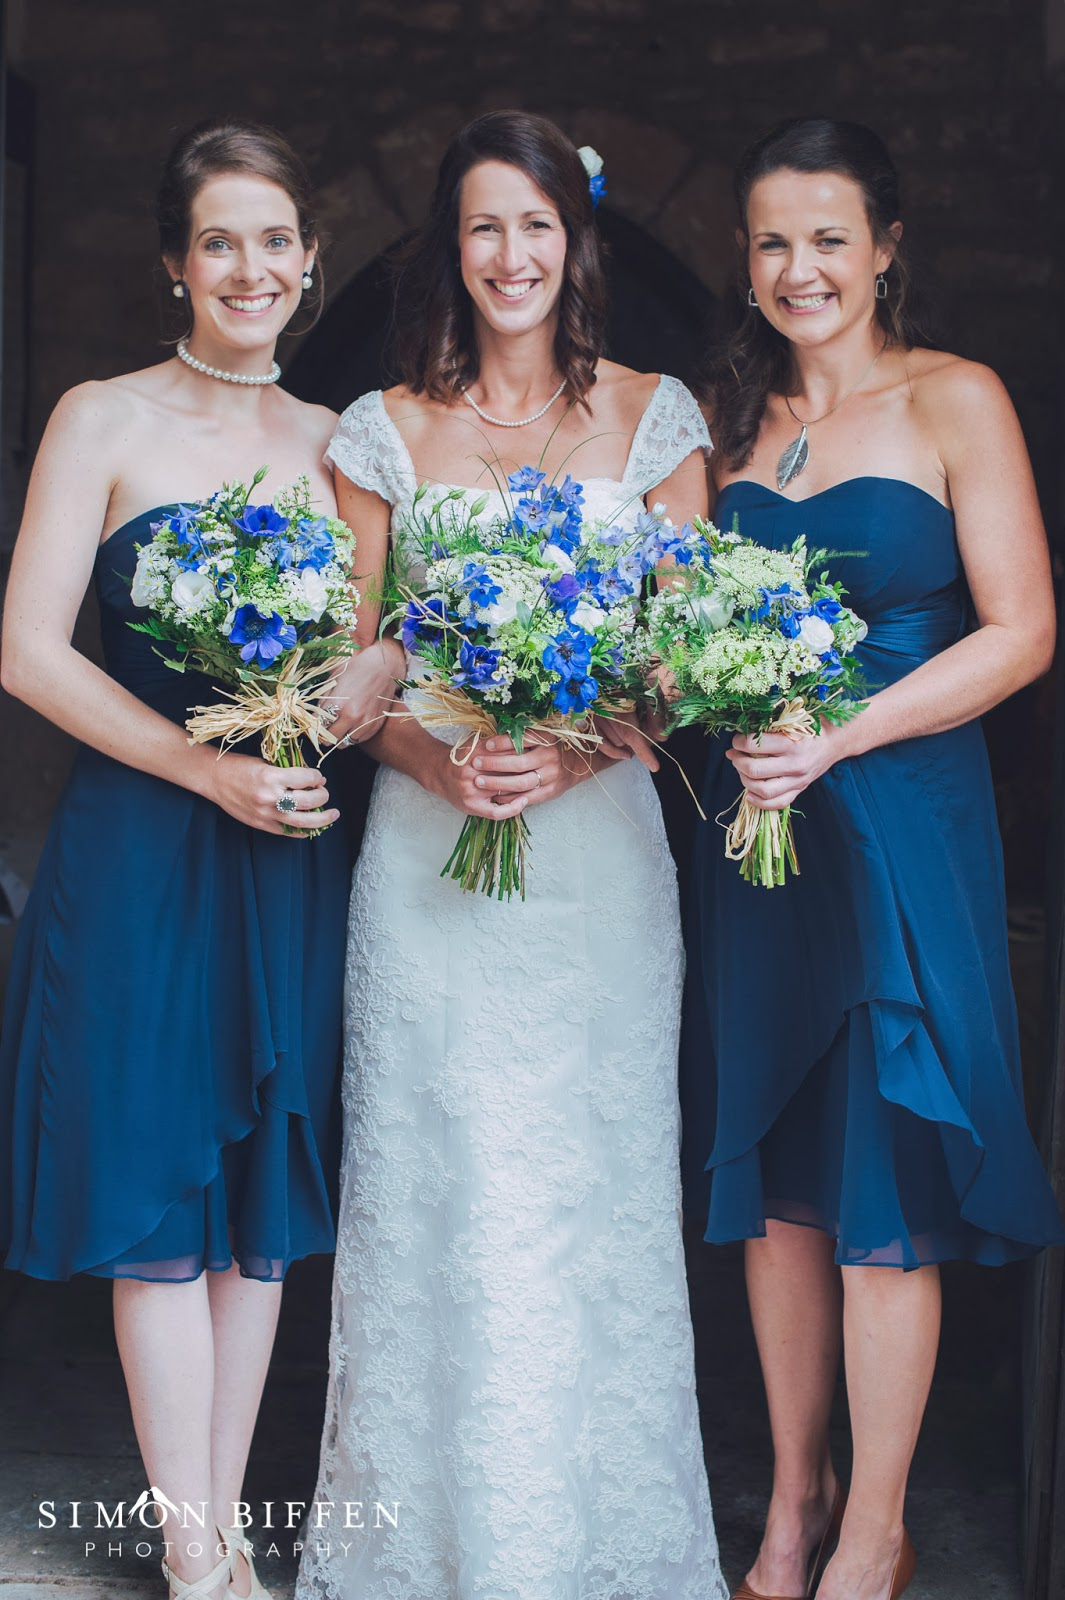 Bride with her bridesmaids in blue dresses